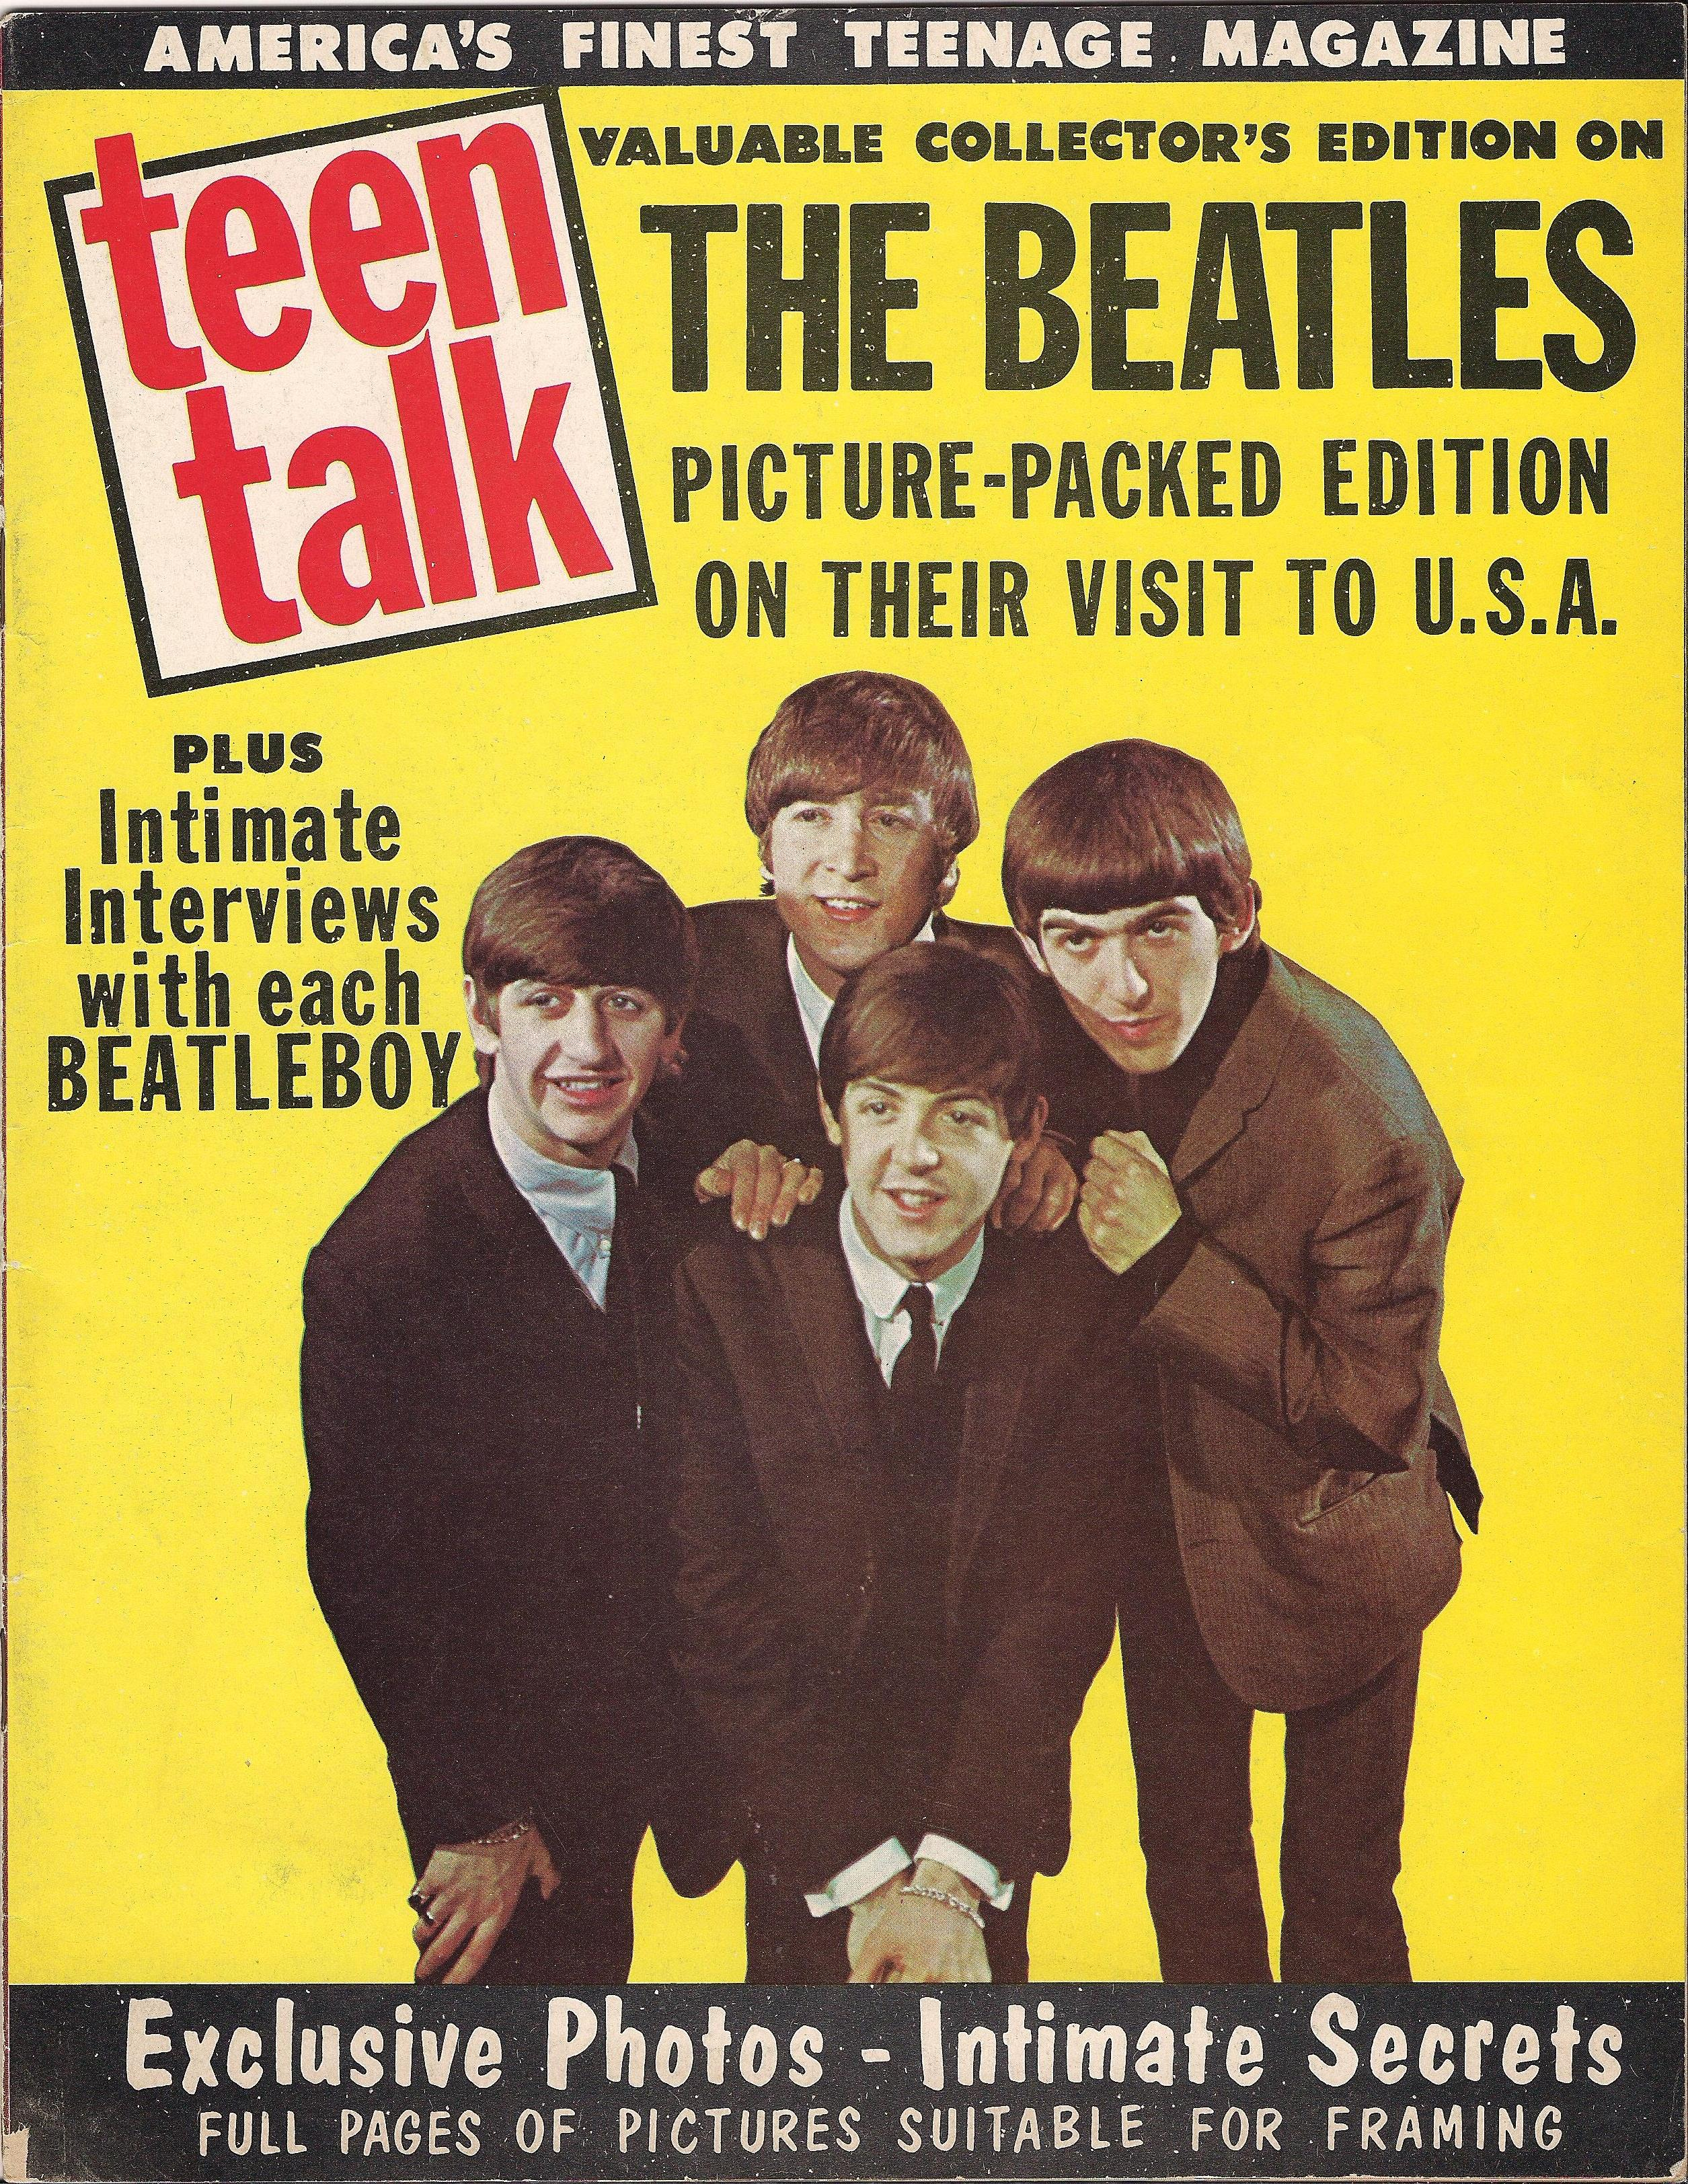 Teen Talk magazine 1964.jpg